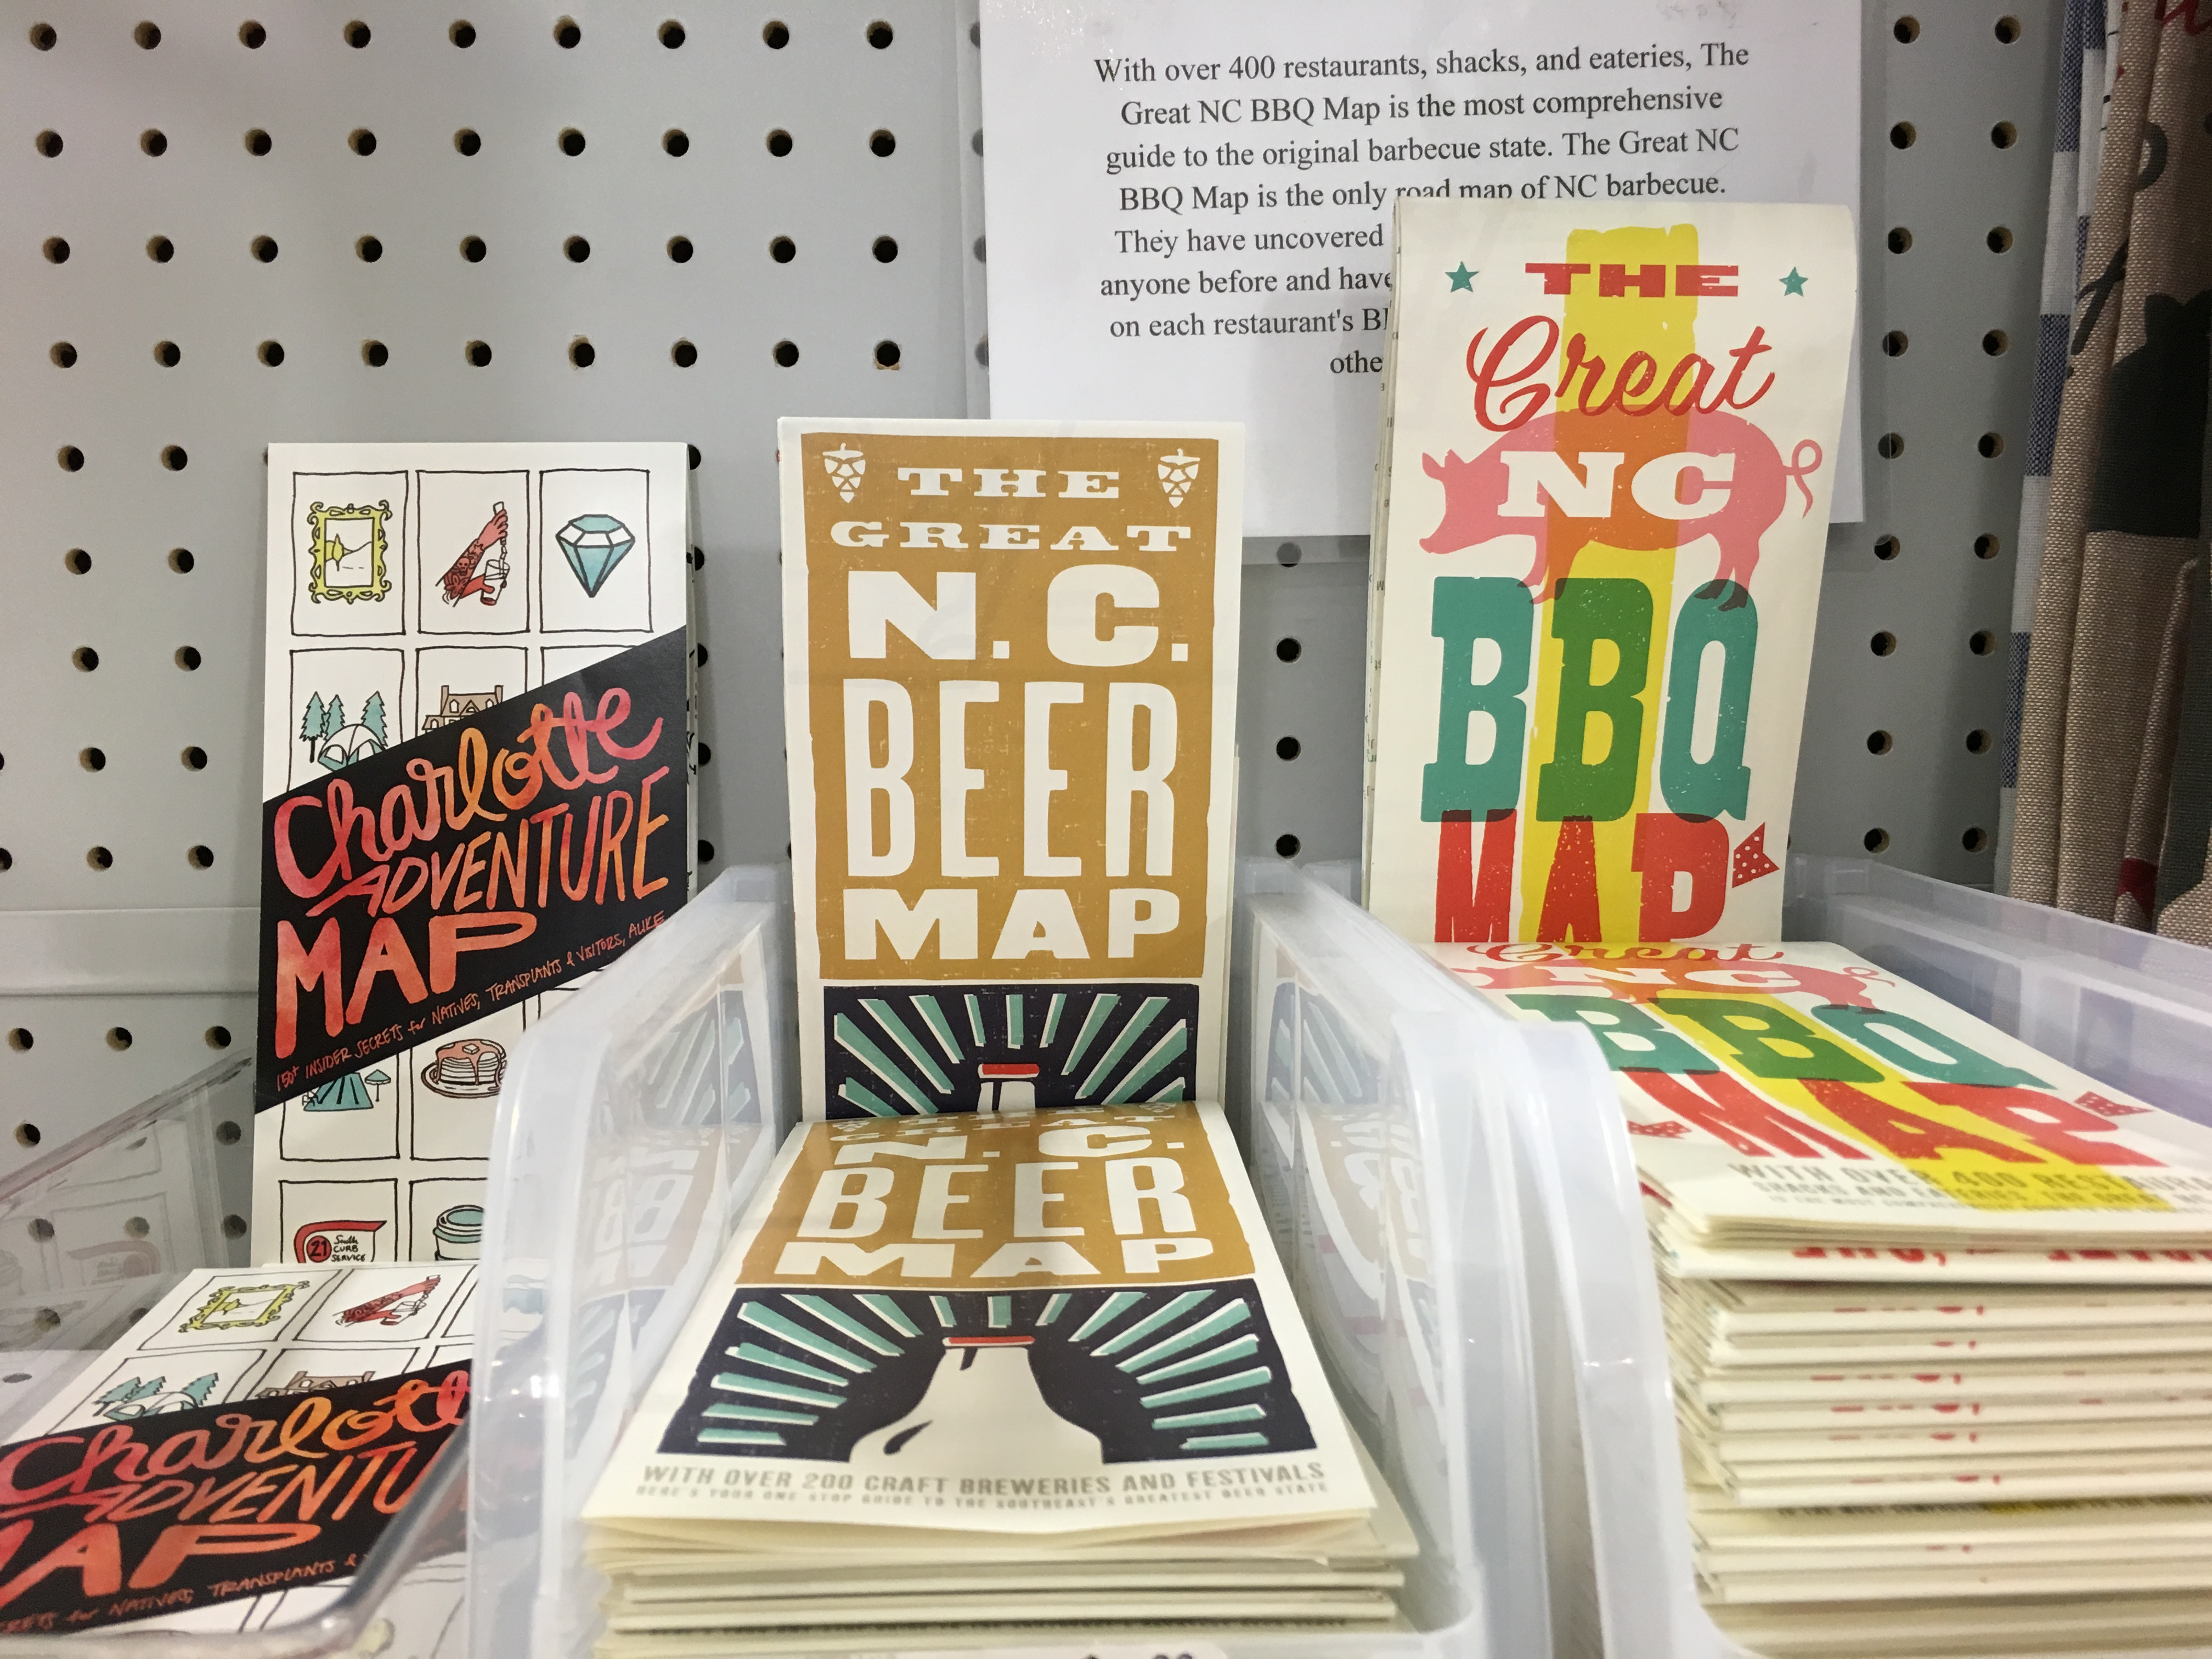 NC beer and adventure maps can be bought at Blackhawk Hardware in Charlotte, NC